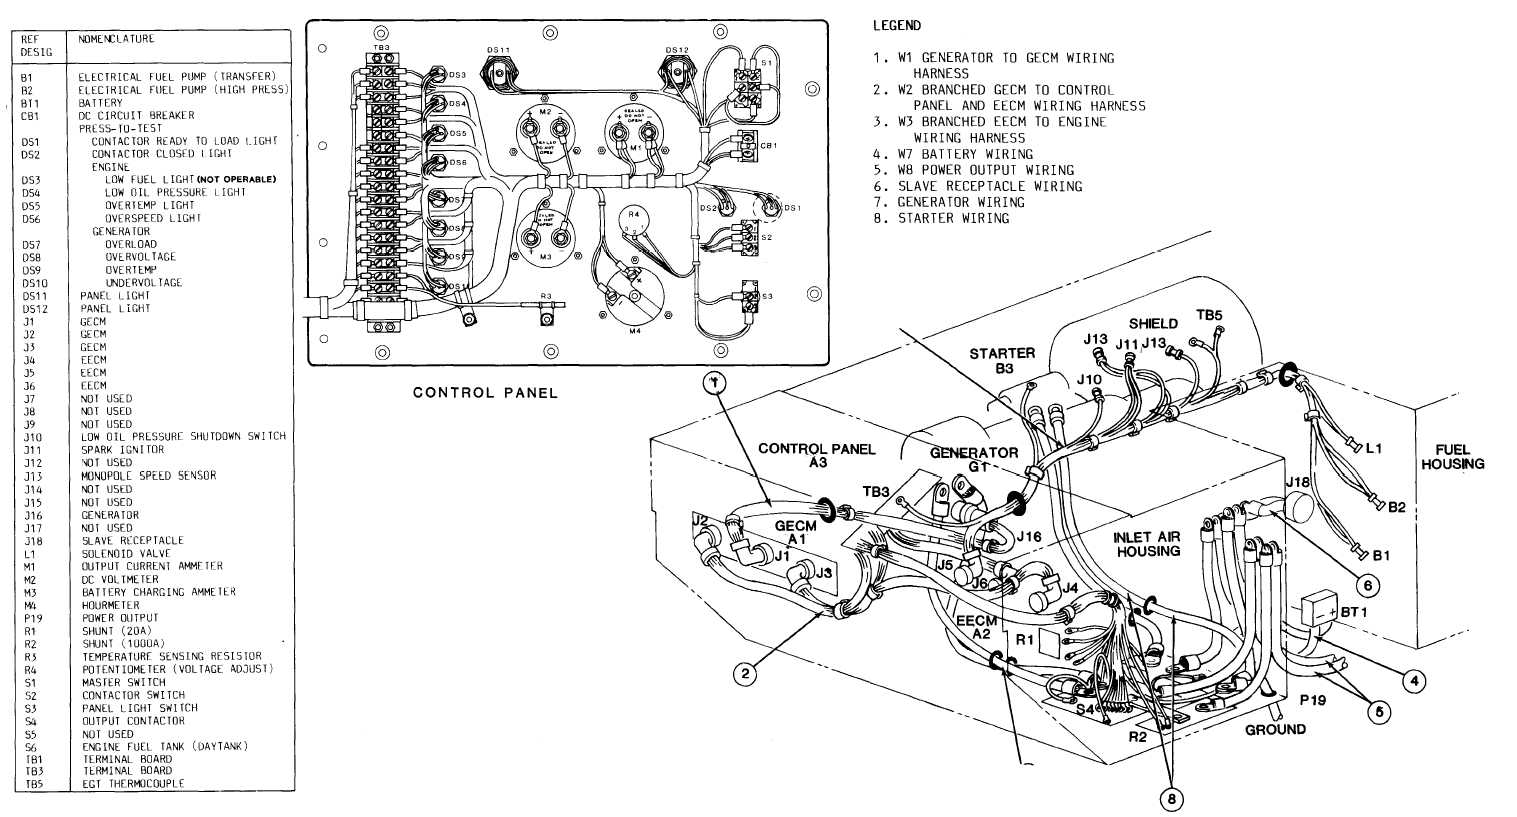 Farmall H Wiring Diagram Conversion. Diagram. Wiring